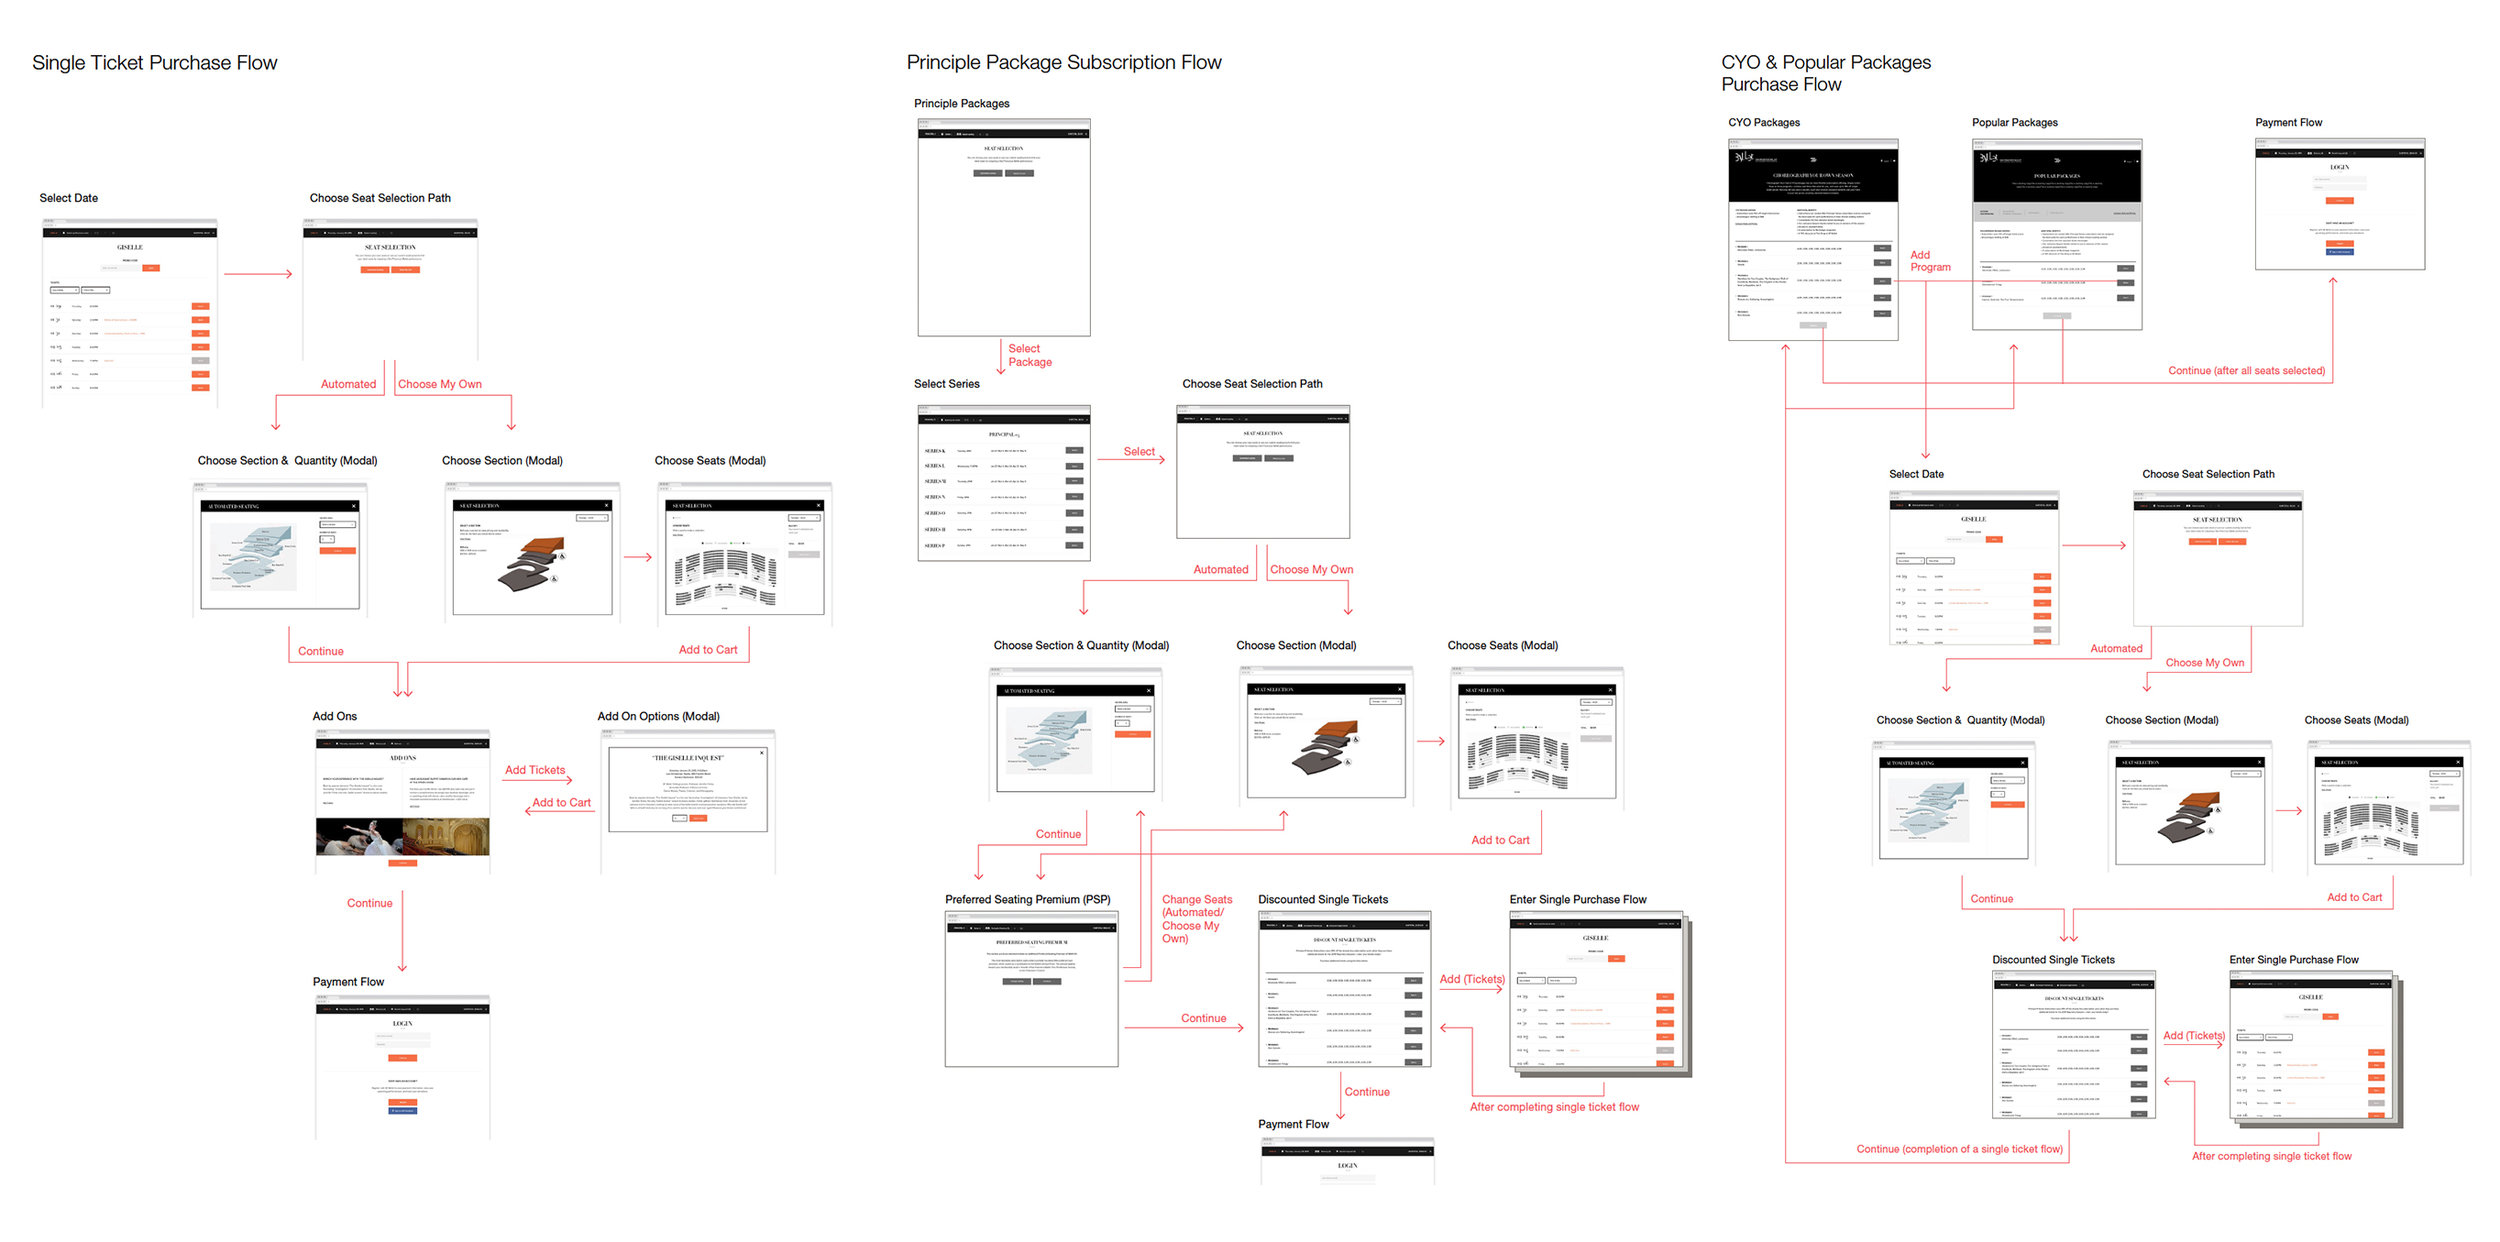 Purchase flow diagrams delivered to SFB and development partners, along with detailed design specifications